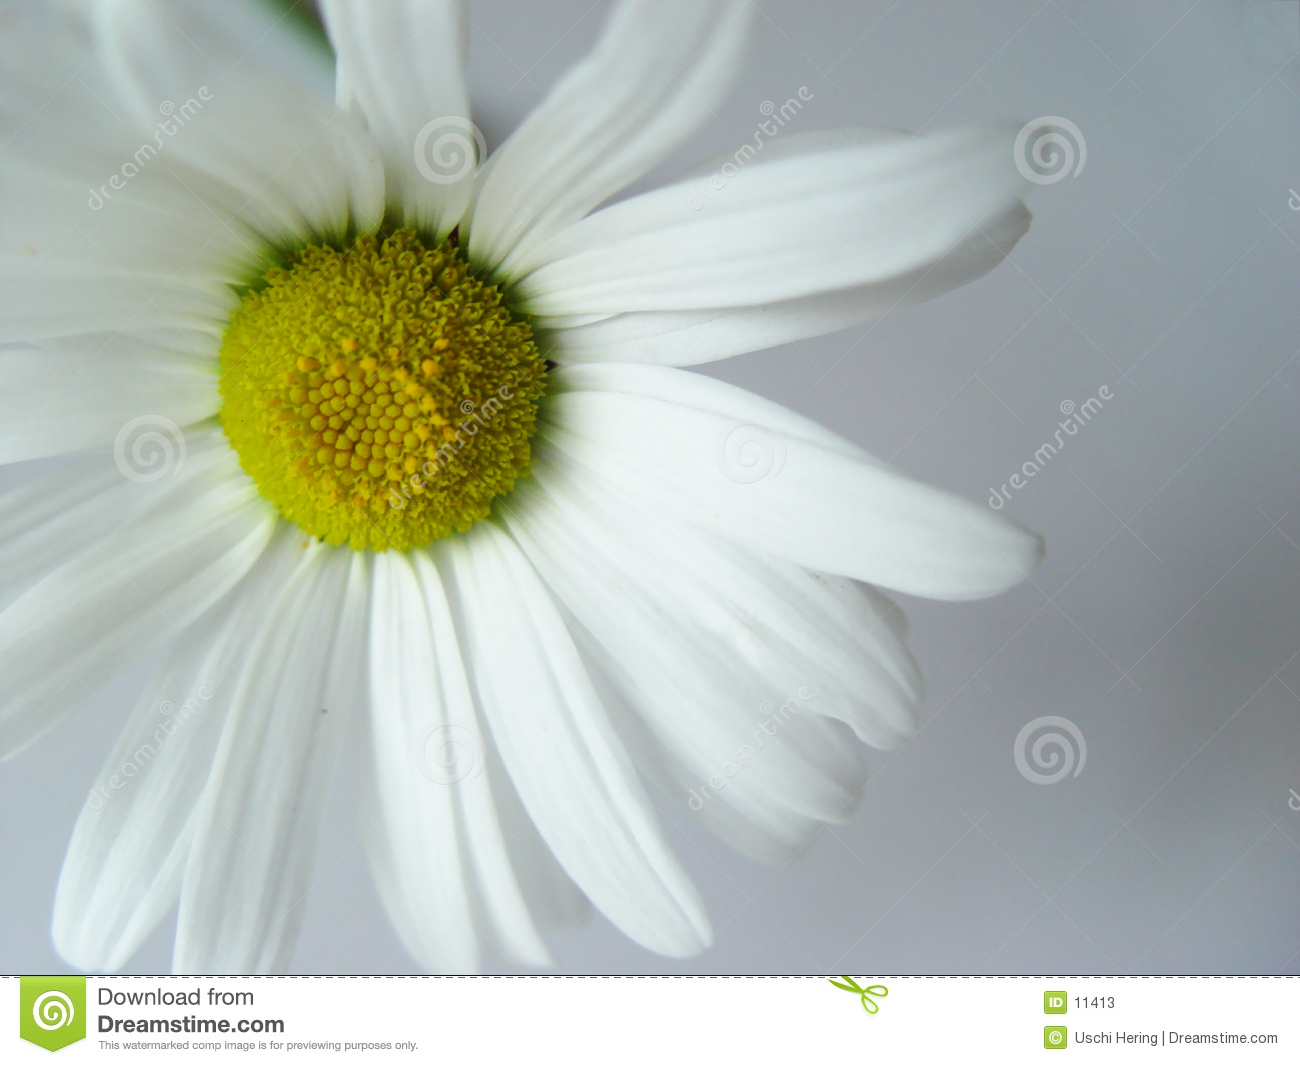 summer daisy white